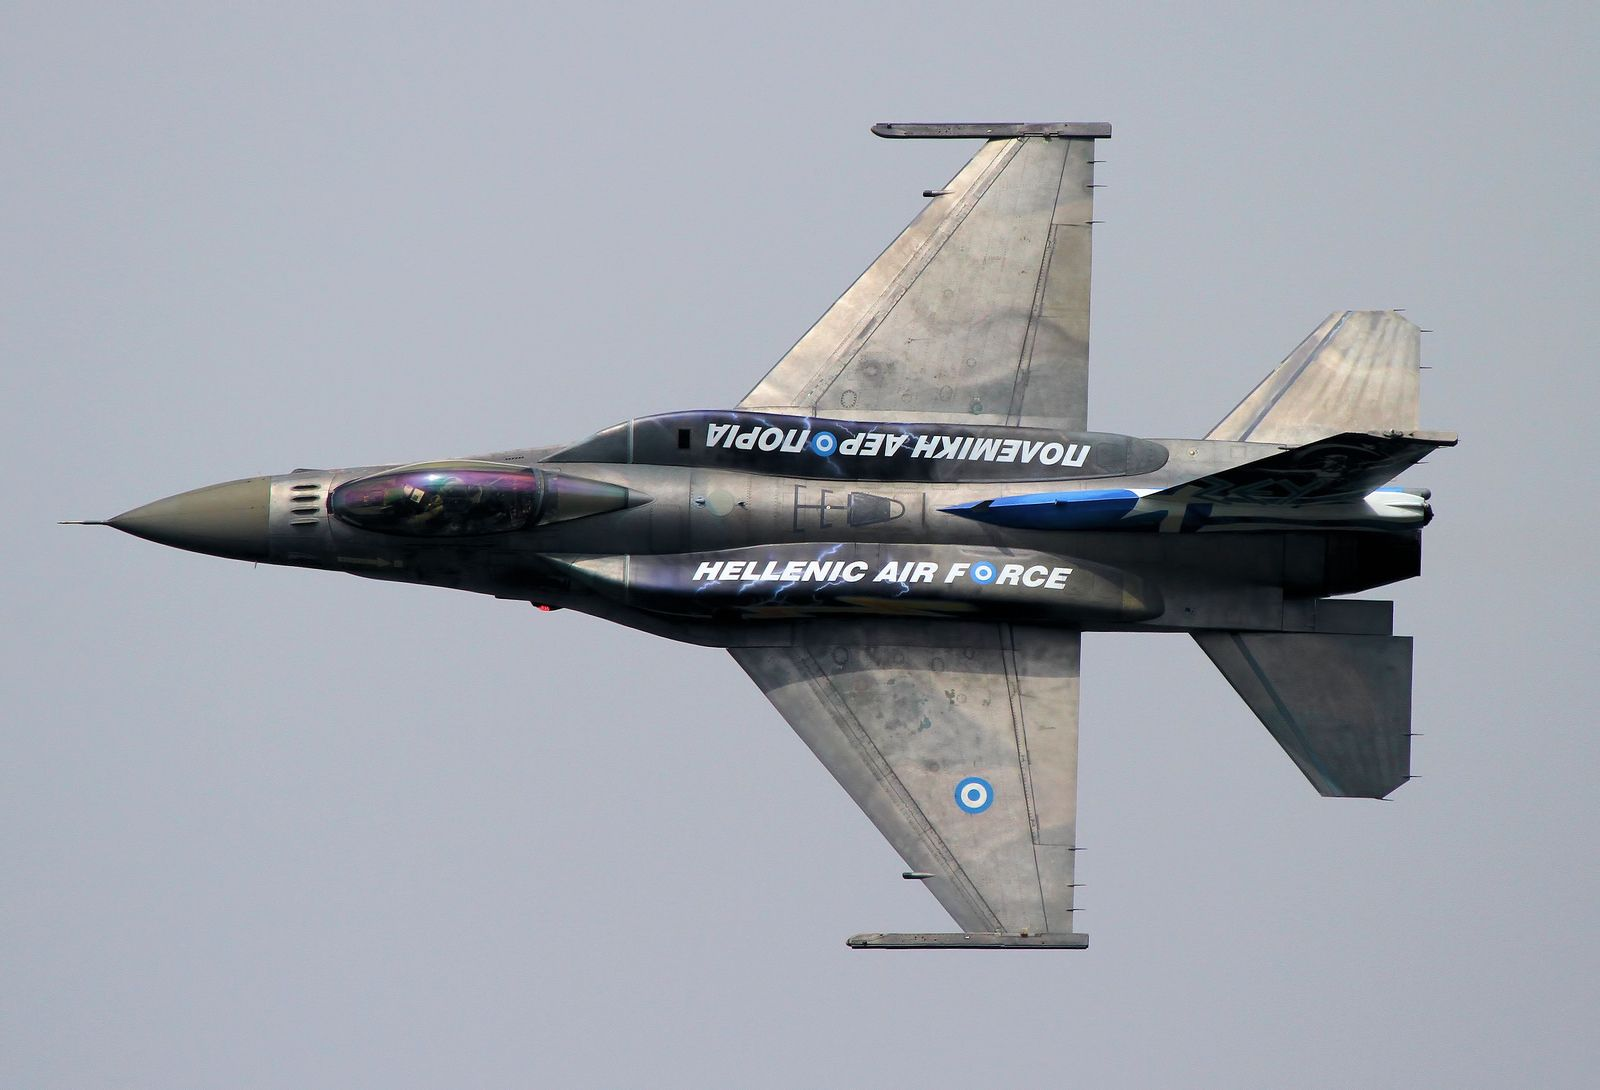 Greek F16 at KB Hellenic air force, Model airplanes